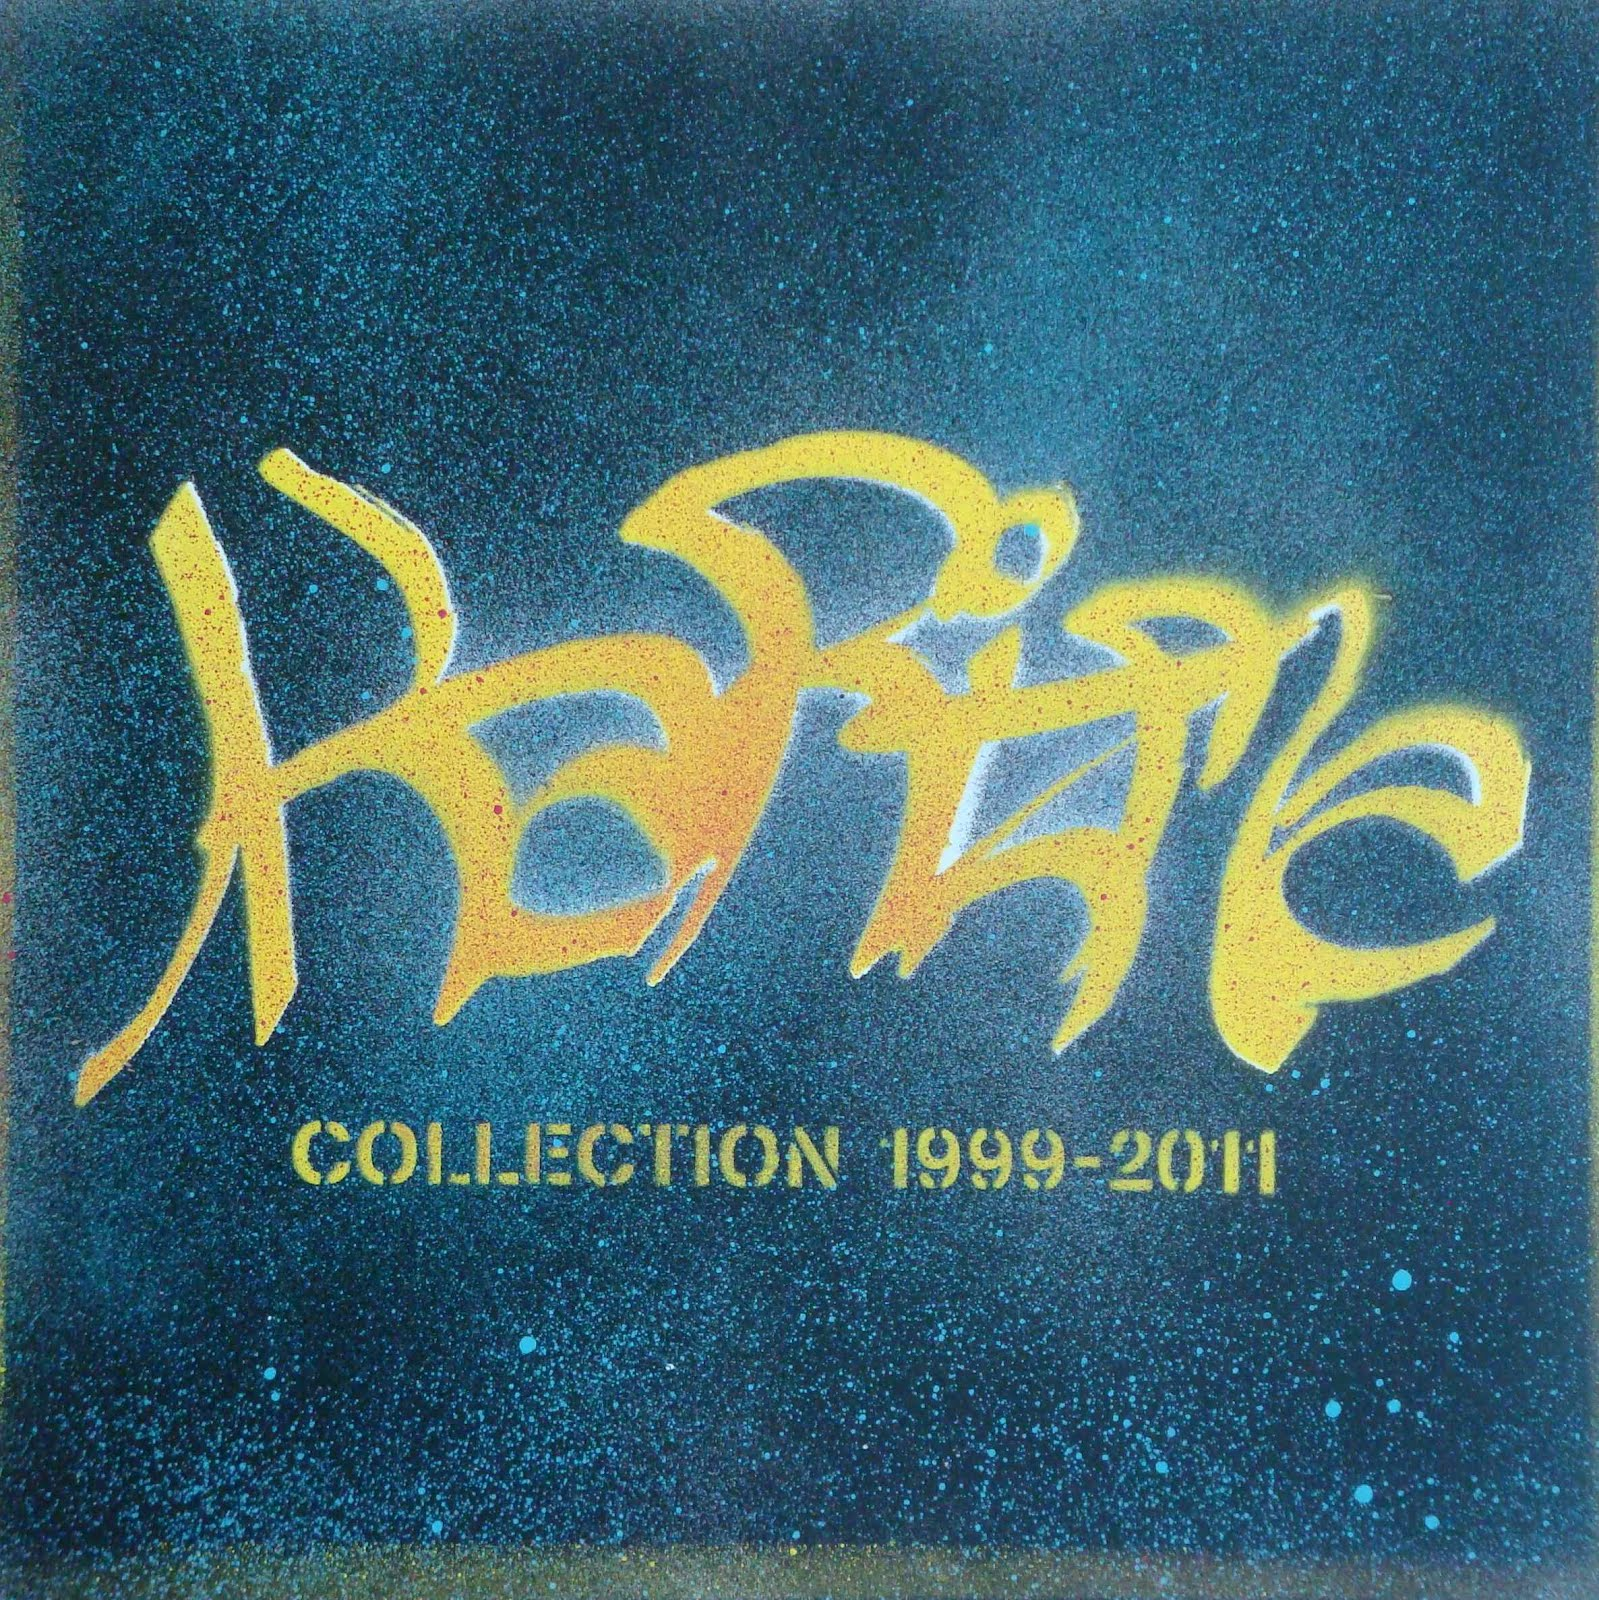 Beathearts: Karizma - Collection 1999-2011 (Limited edition)